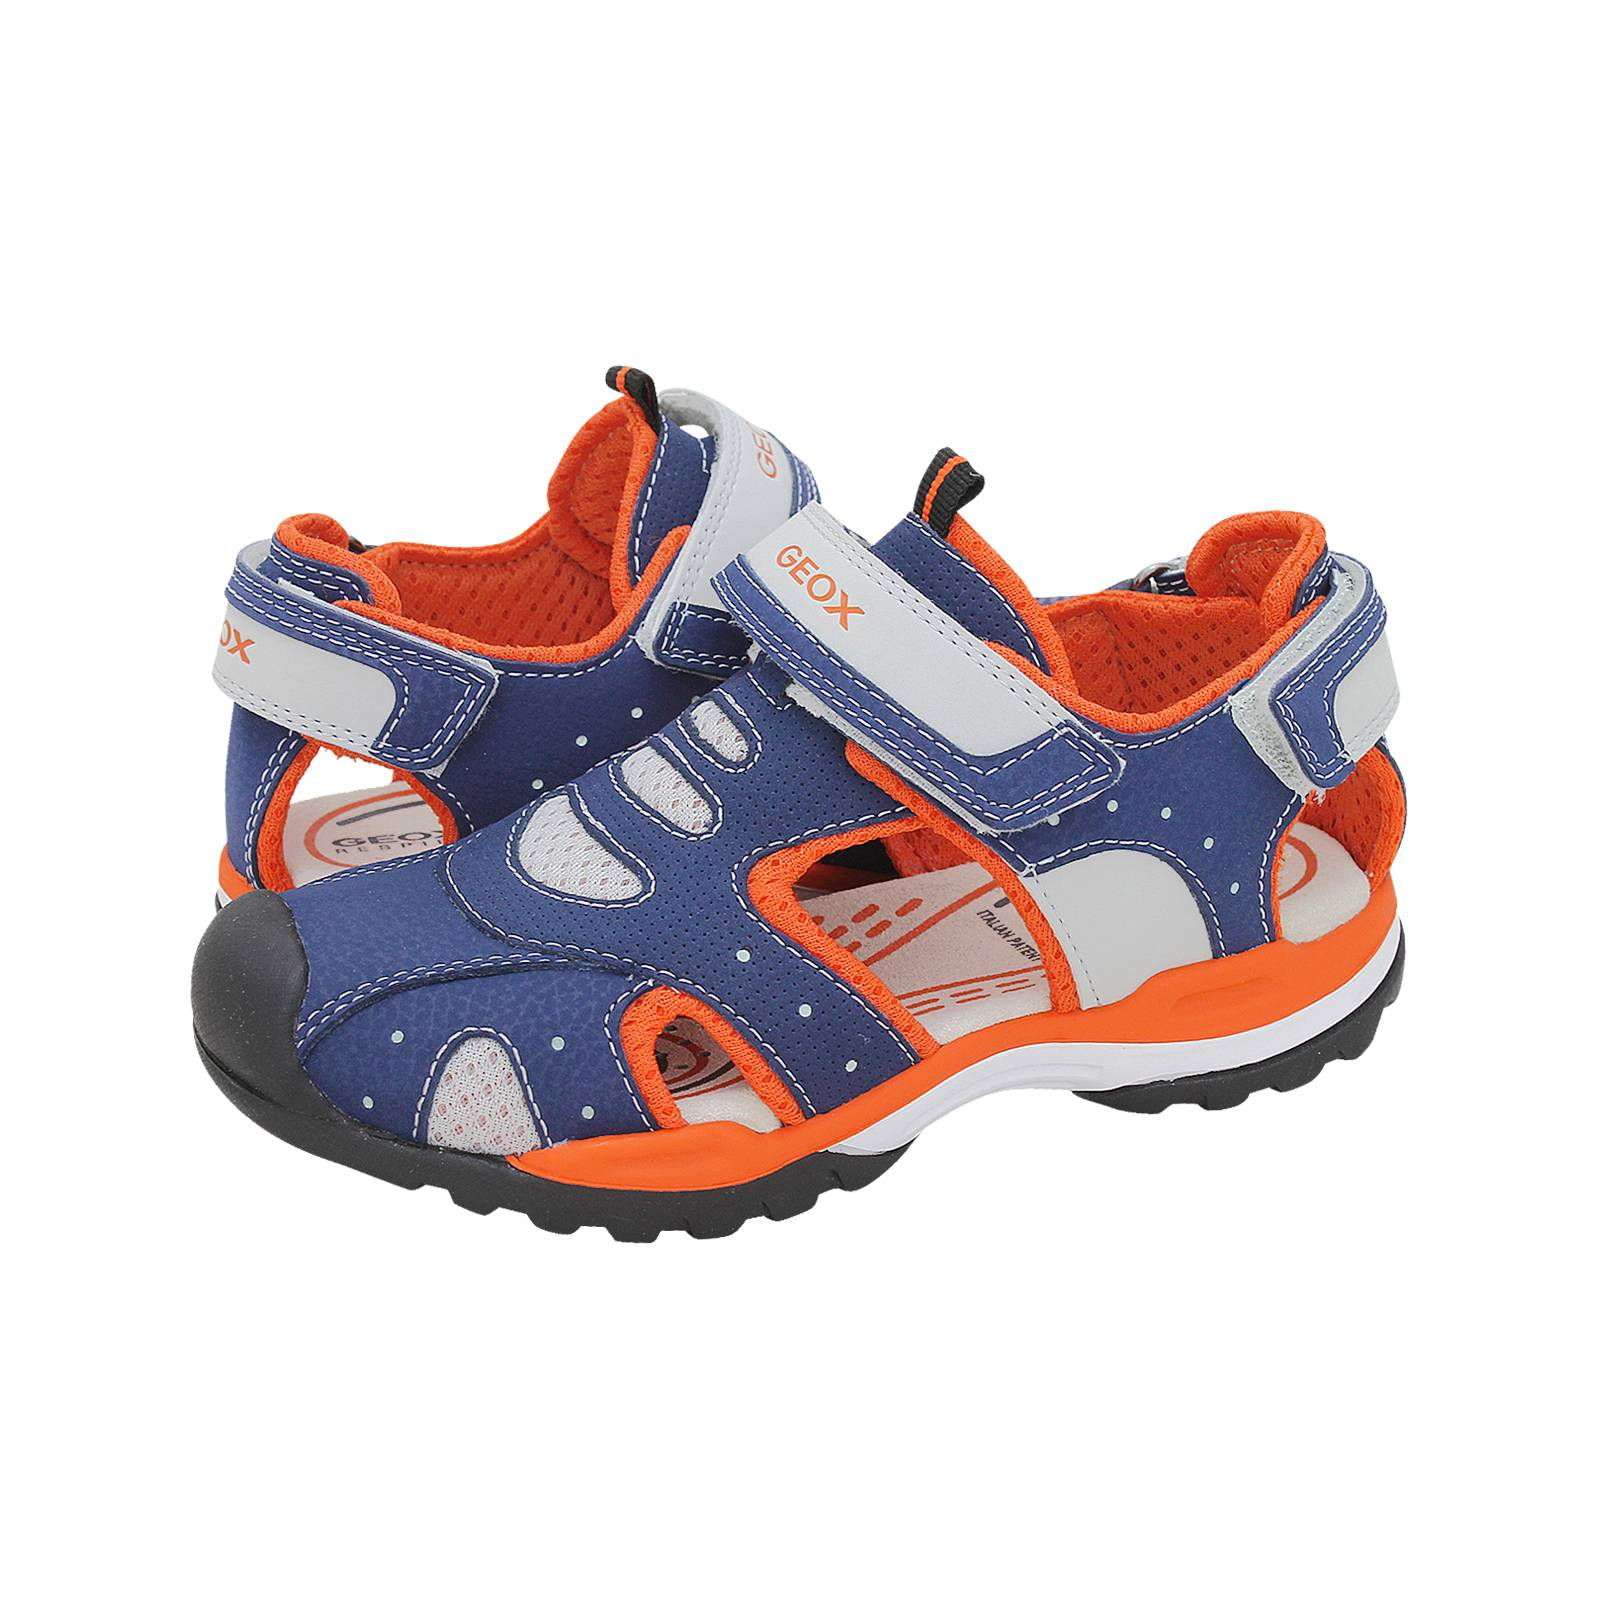 Helecho whisky fractura  J Borealis B.C - Geox Kids' sandals made of synthetic leather and fabric -  Gianna Kazakou Online